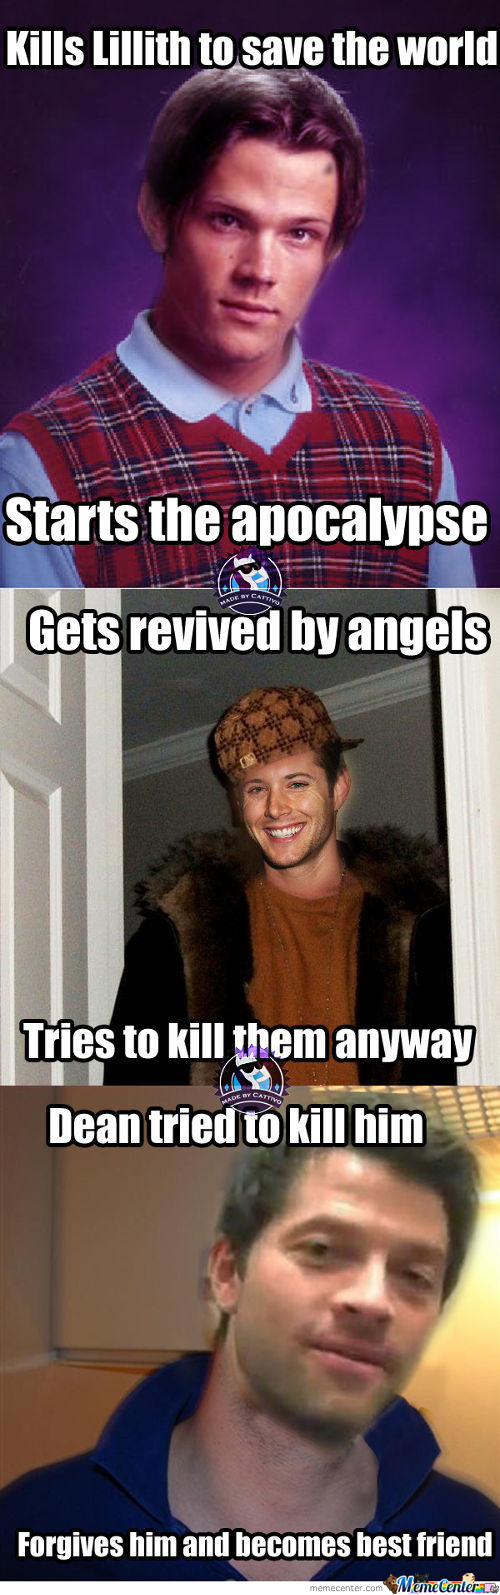 original supernatural meme center shared by rettxed on we heart it